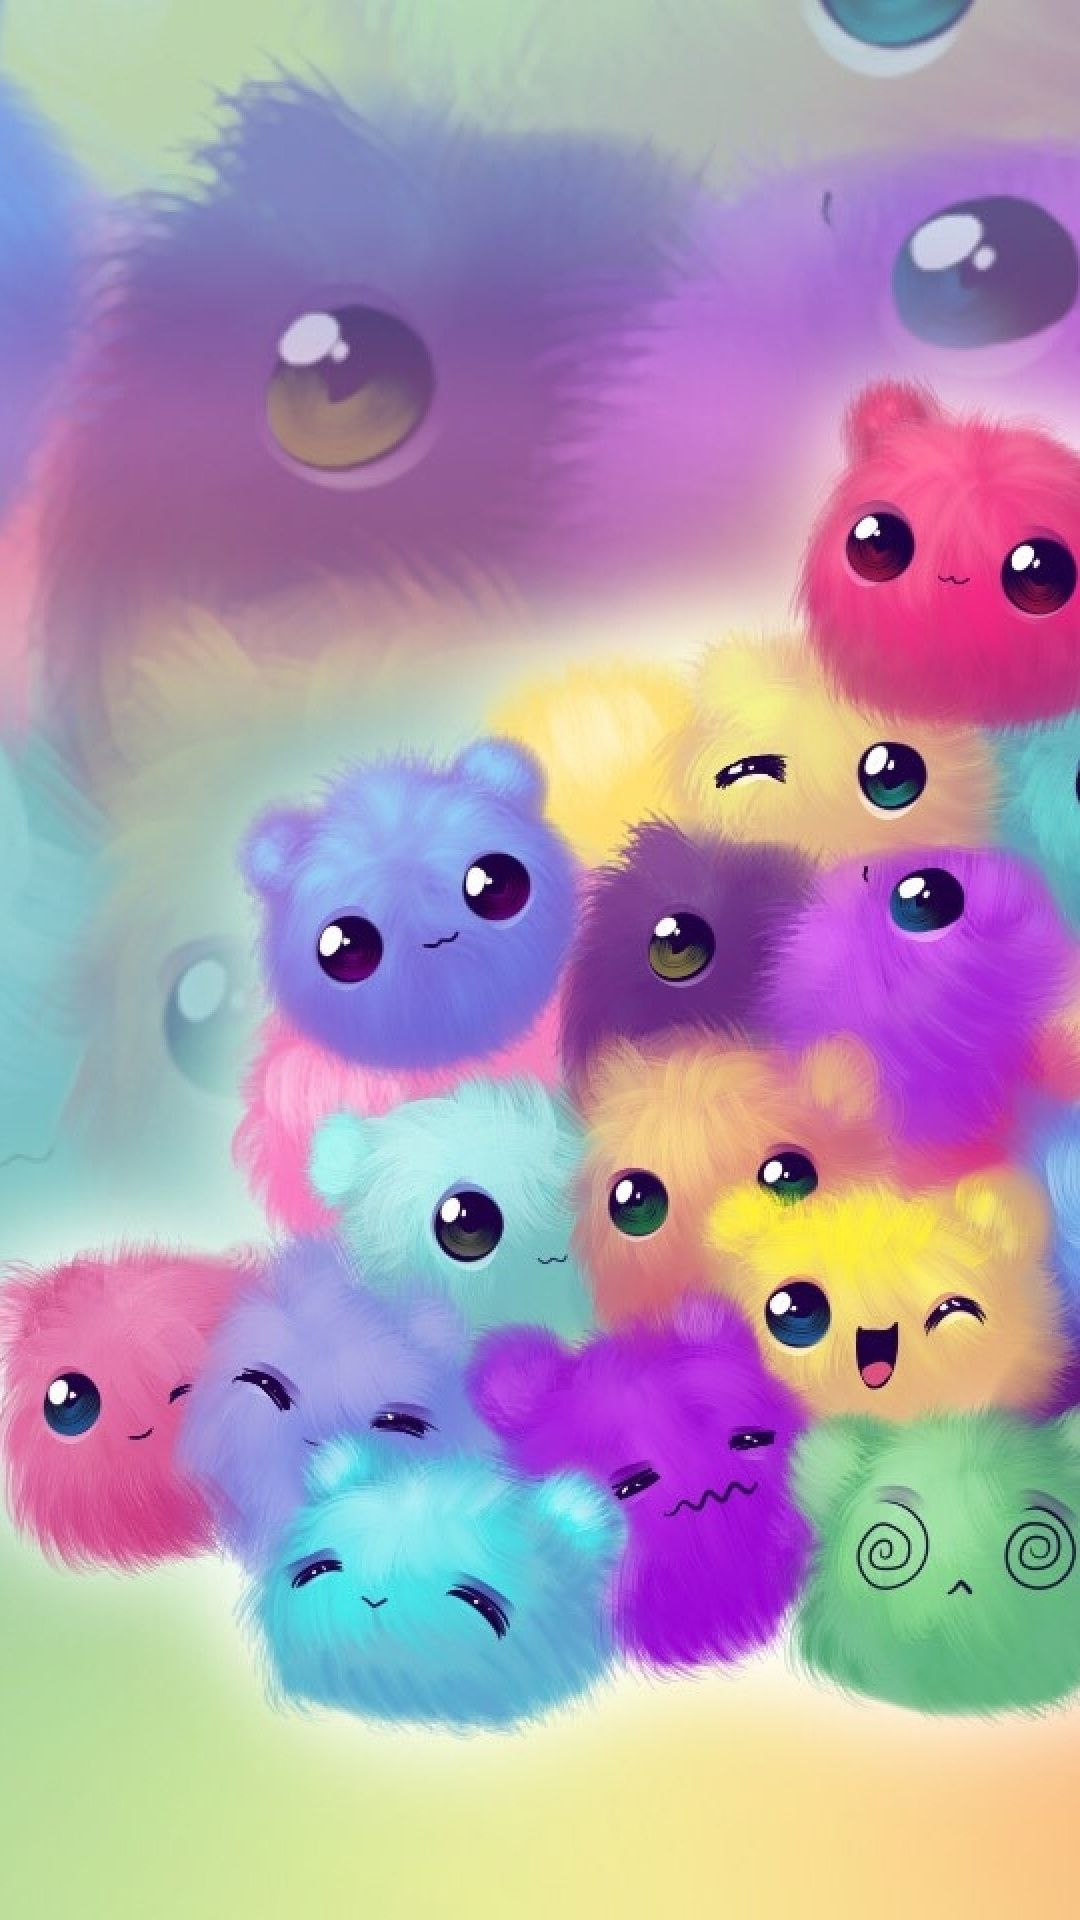 Cute characters | Cute wallpapers, Cute backgrounds, Anime ...